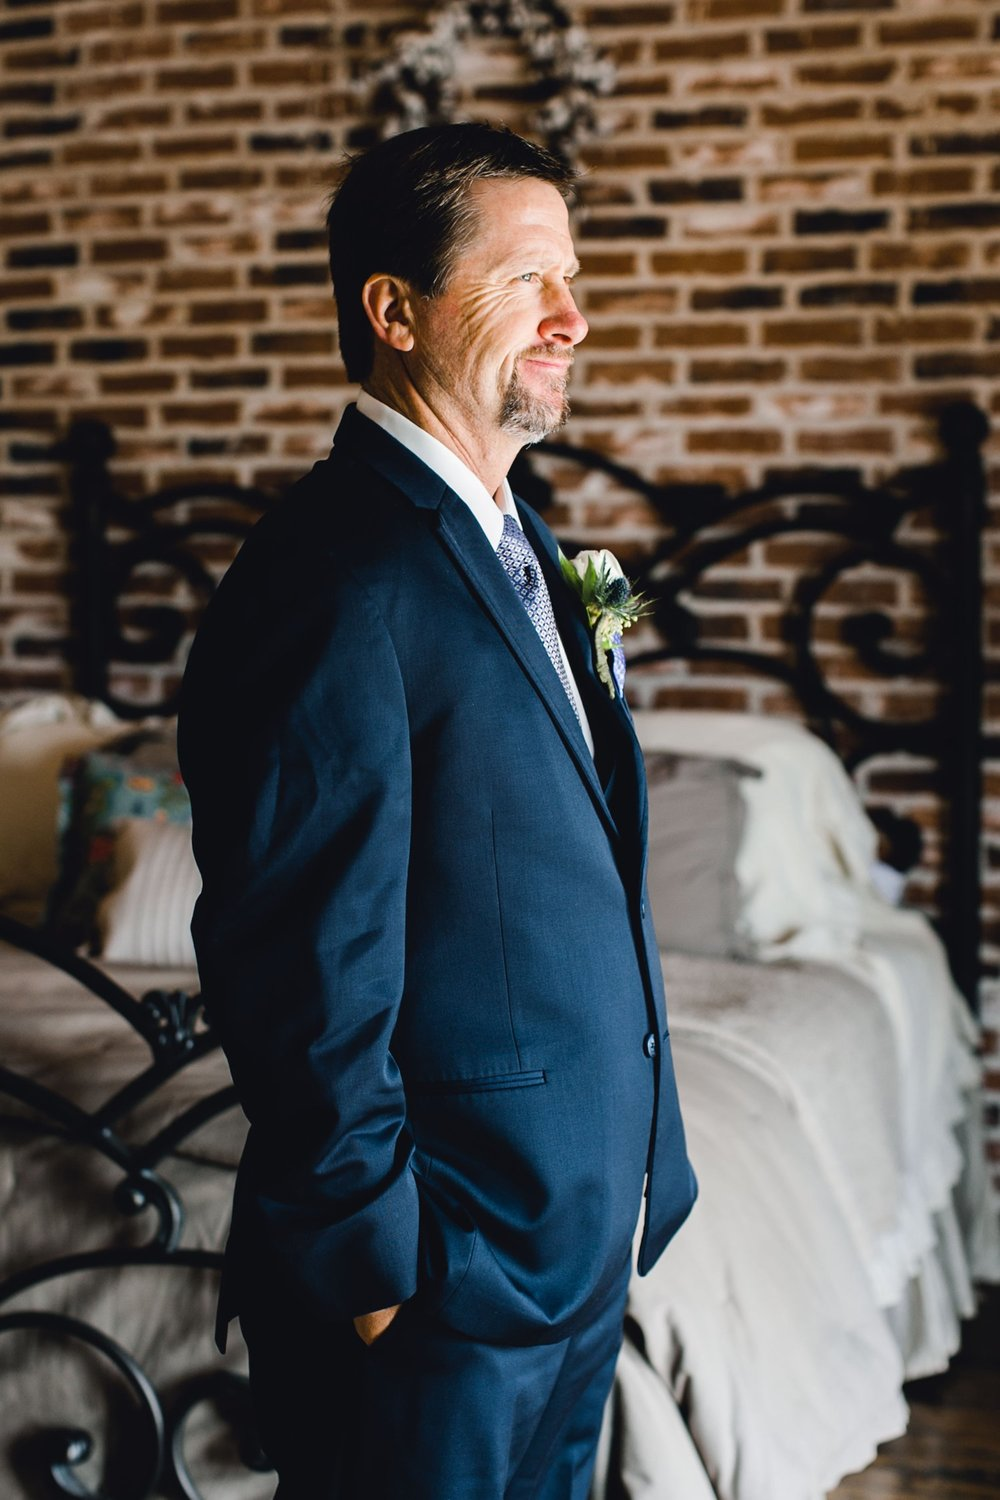 KAITLYN_AND_ZACHARY_HUNT_ALLEEJ_LUBBOCK_WEDDING_PHOTOGRAPHER_EBERLEY_BROOKS_EVENTS_0029.jpg